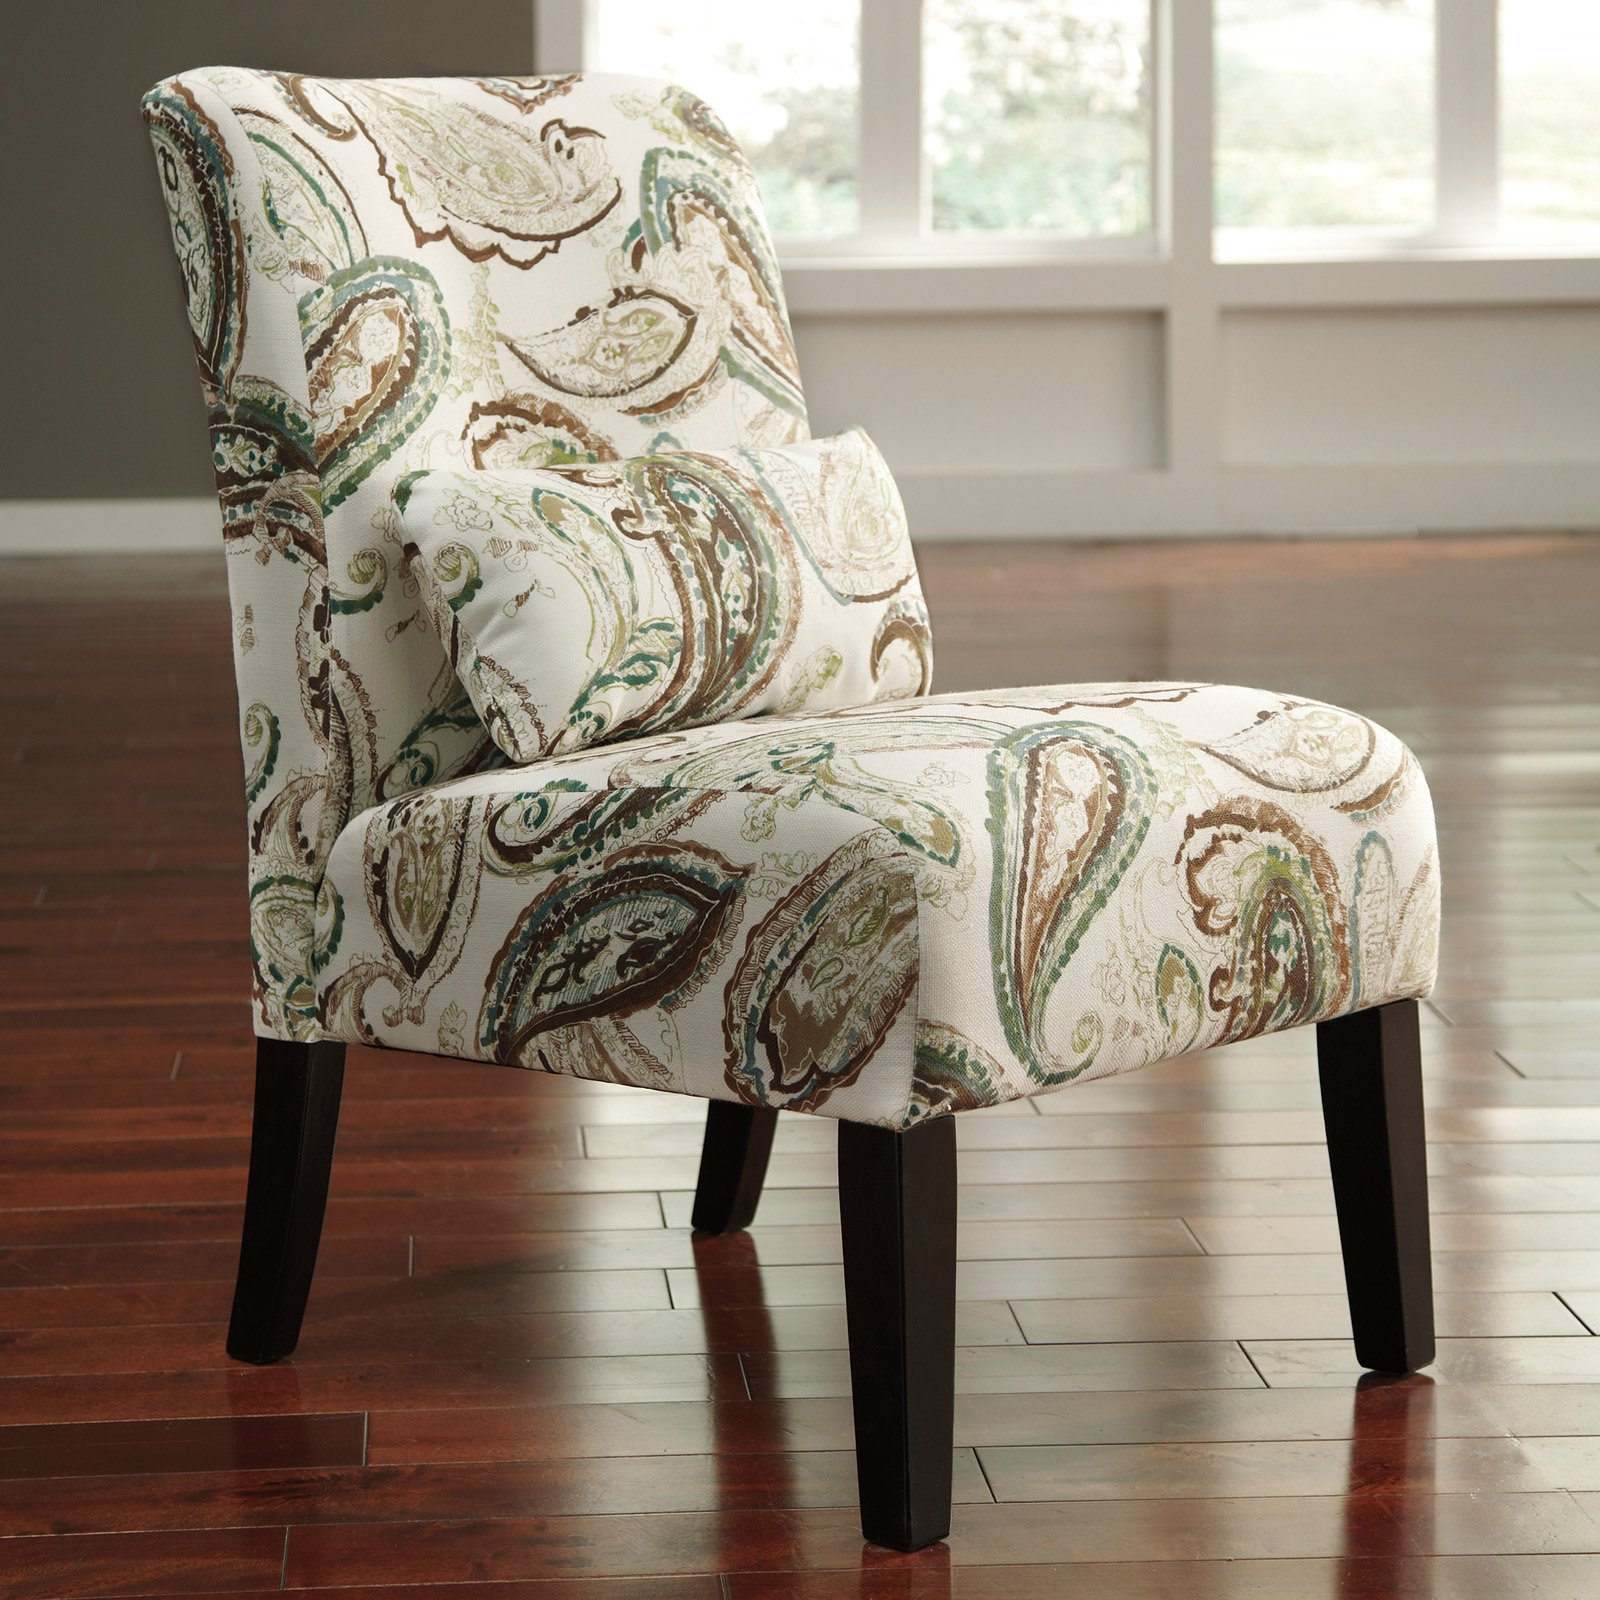 Superieur Signature Design By Ashley Annora Accent Chair   Paisley   Walmart.com